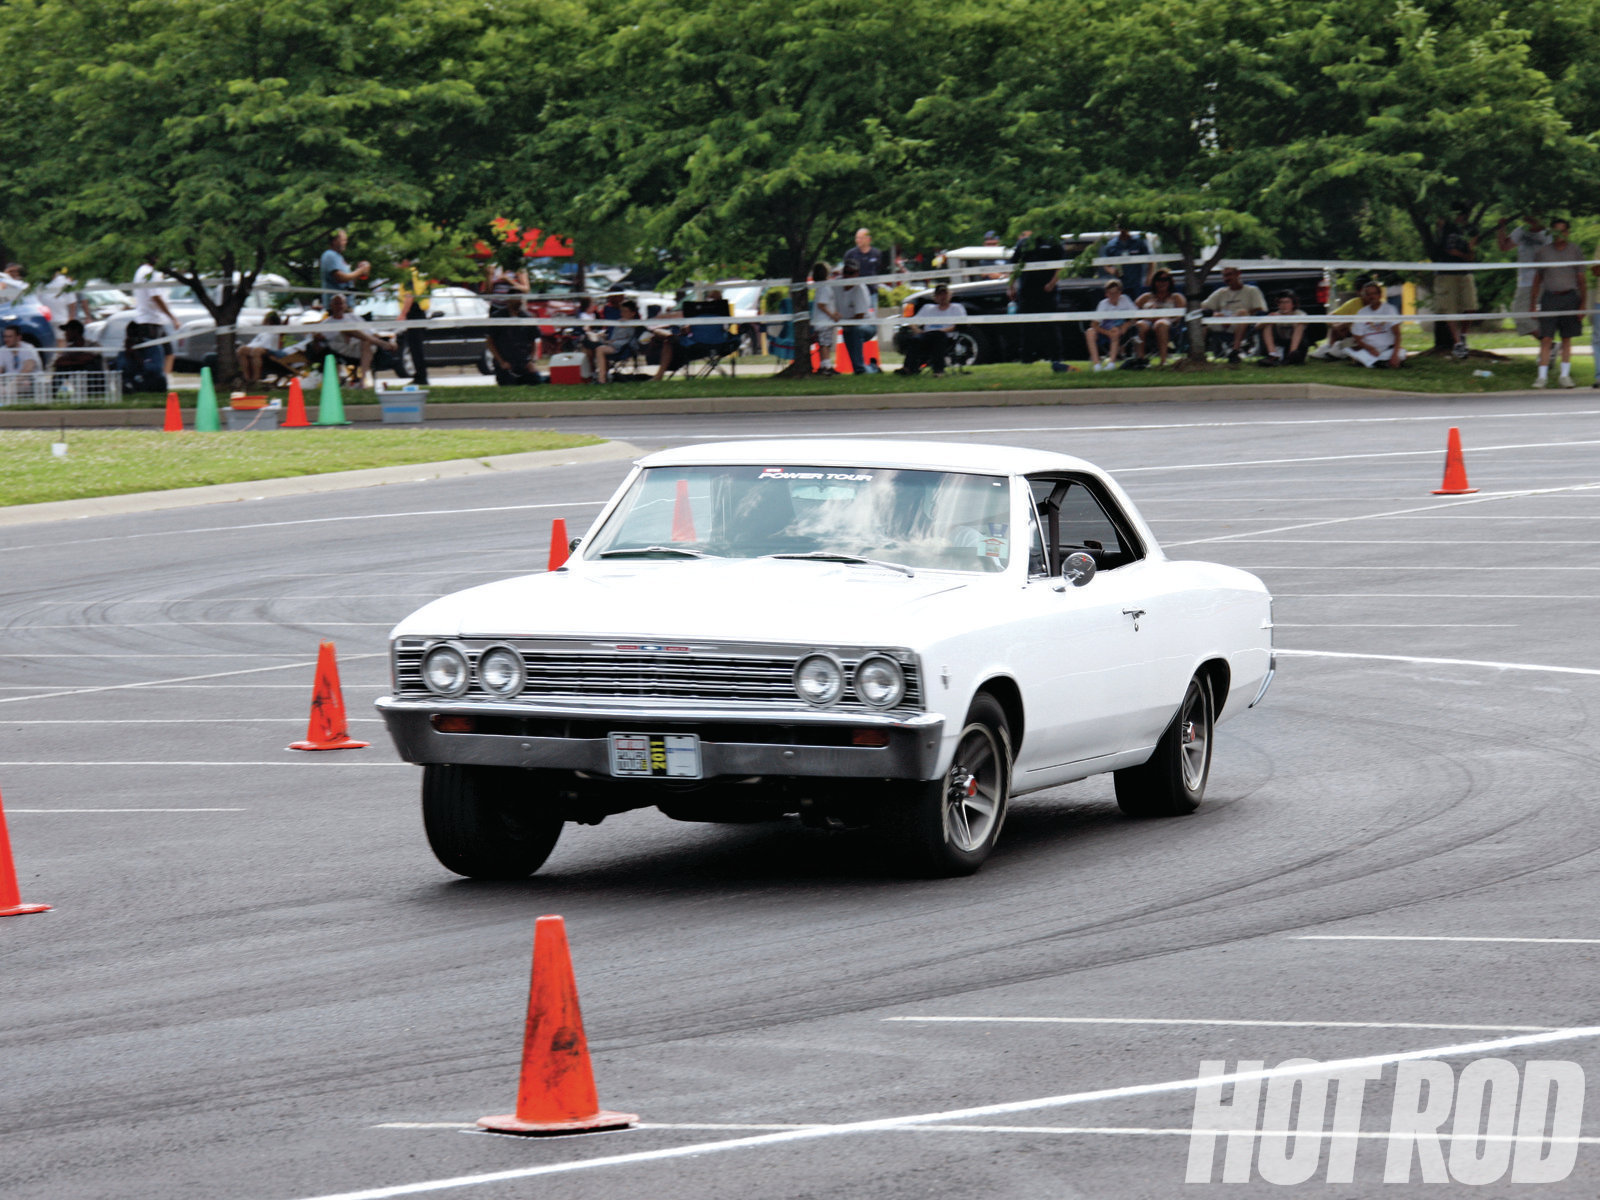 """Matt Makaryk got a two-week leave from his Army stint in Kirkuk, Iraq, and spent it on Power Tour® with """"The Ghost,"""" his '67 Chevelle. It has a fuel-injected 327, a TH700-R4 automatic, and a bone-stock suspension. This was his first time on an autocross, and you could see the grin from a mile away. He logged 2,781 miles on the trip."""